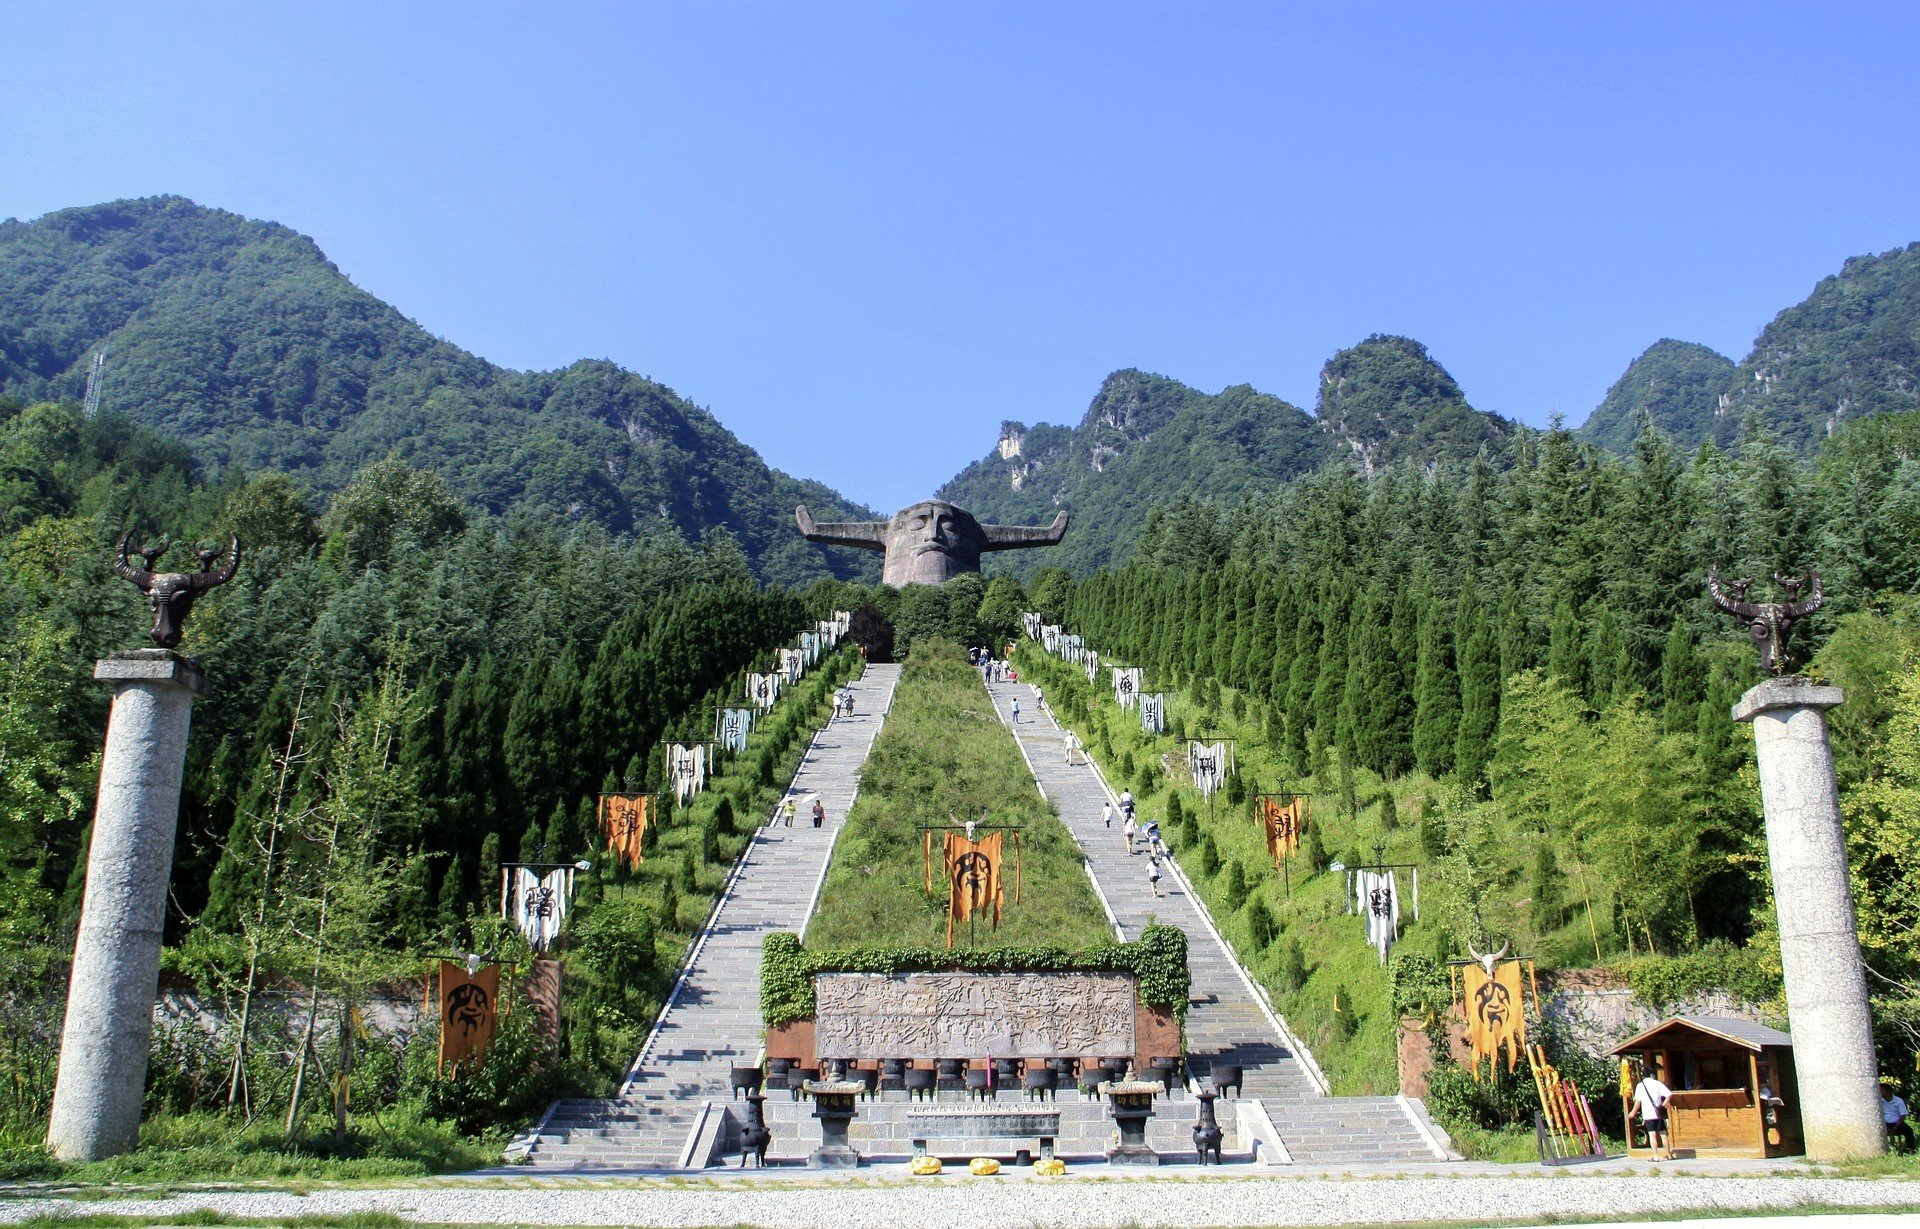 Shennongjia Forestry District in Hubei Province